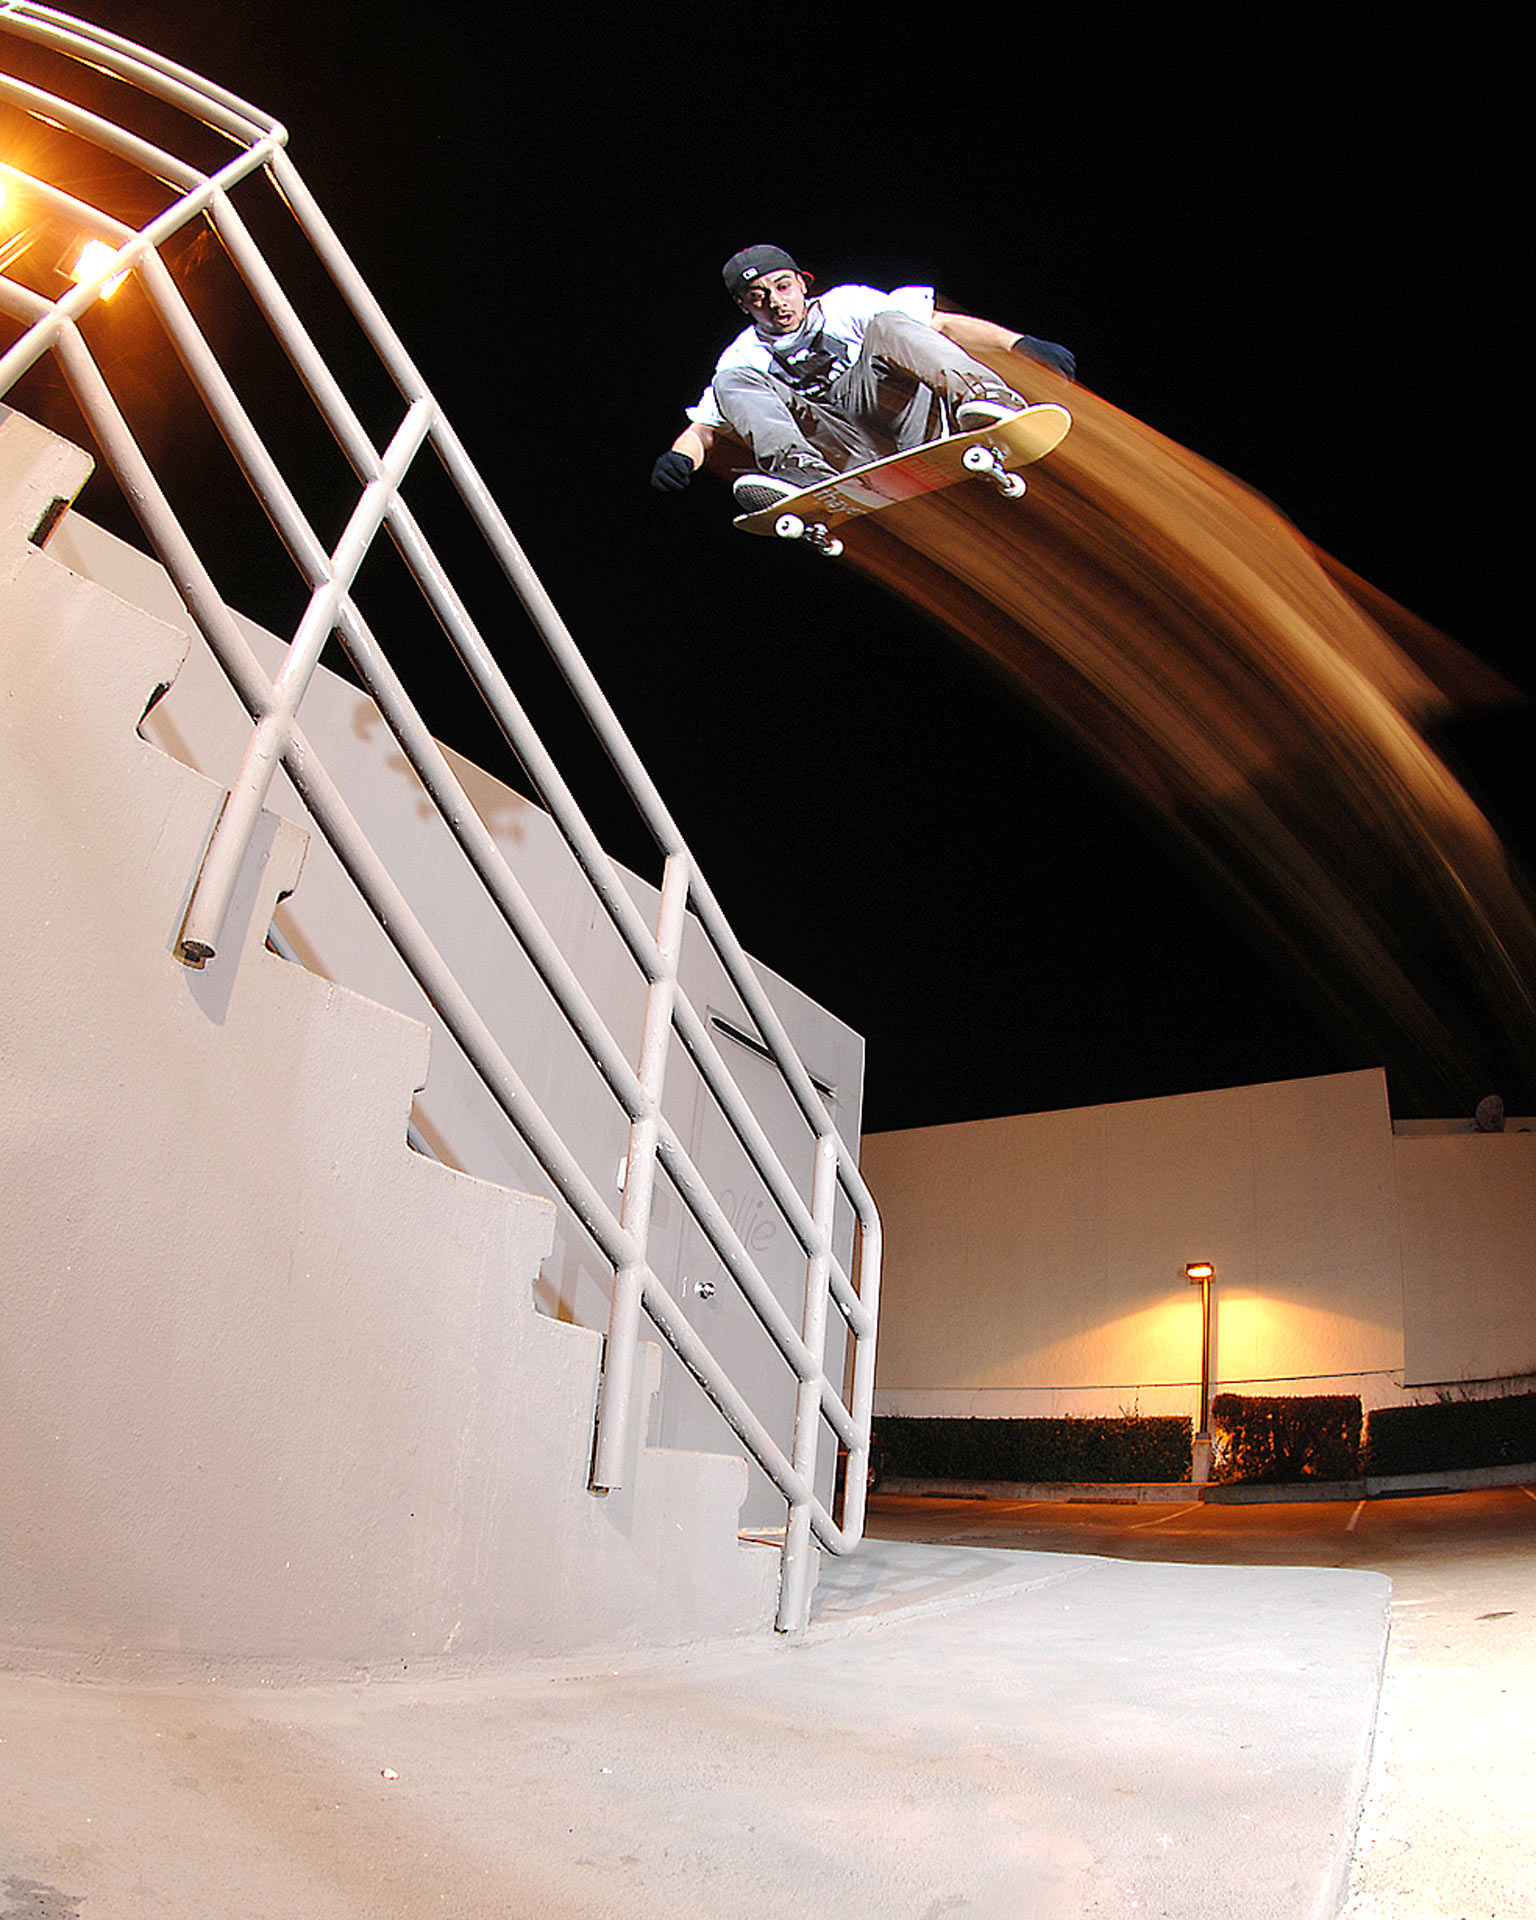 Dwayne Galloway, Backside 180